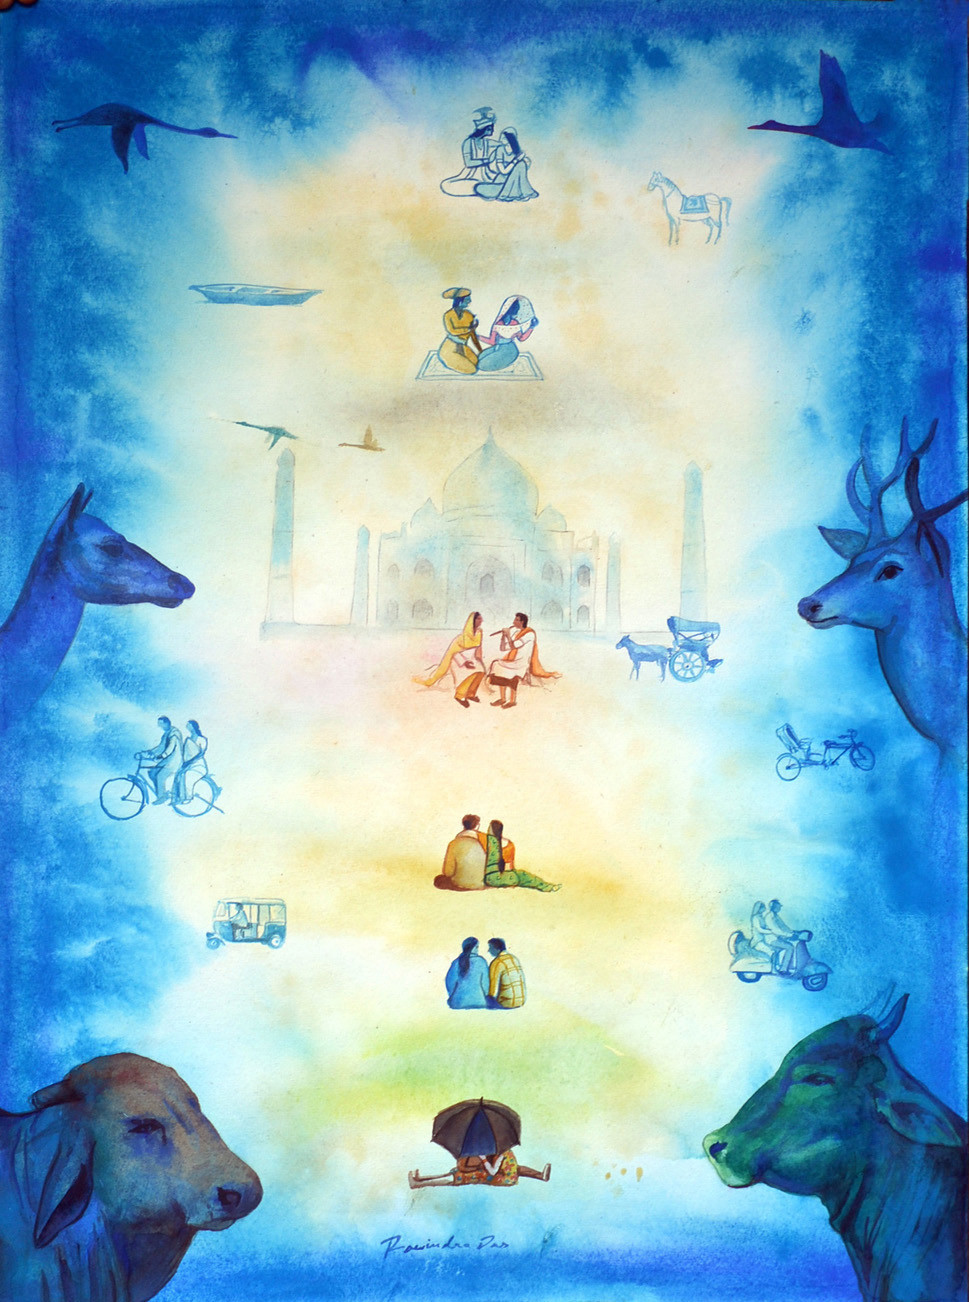 Love Dont Change 1 by rawindra kumar das, Fantasy Painting, Watercolor on Paper, Cyan color